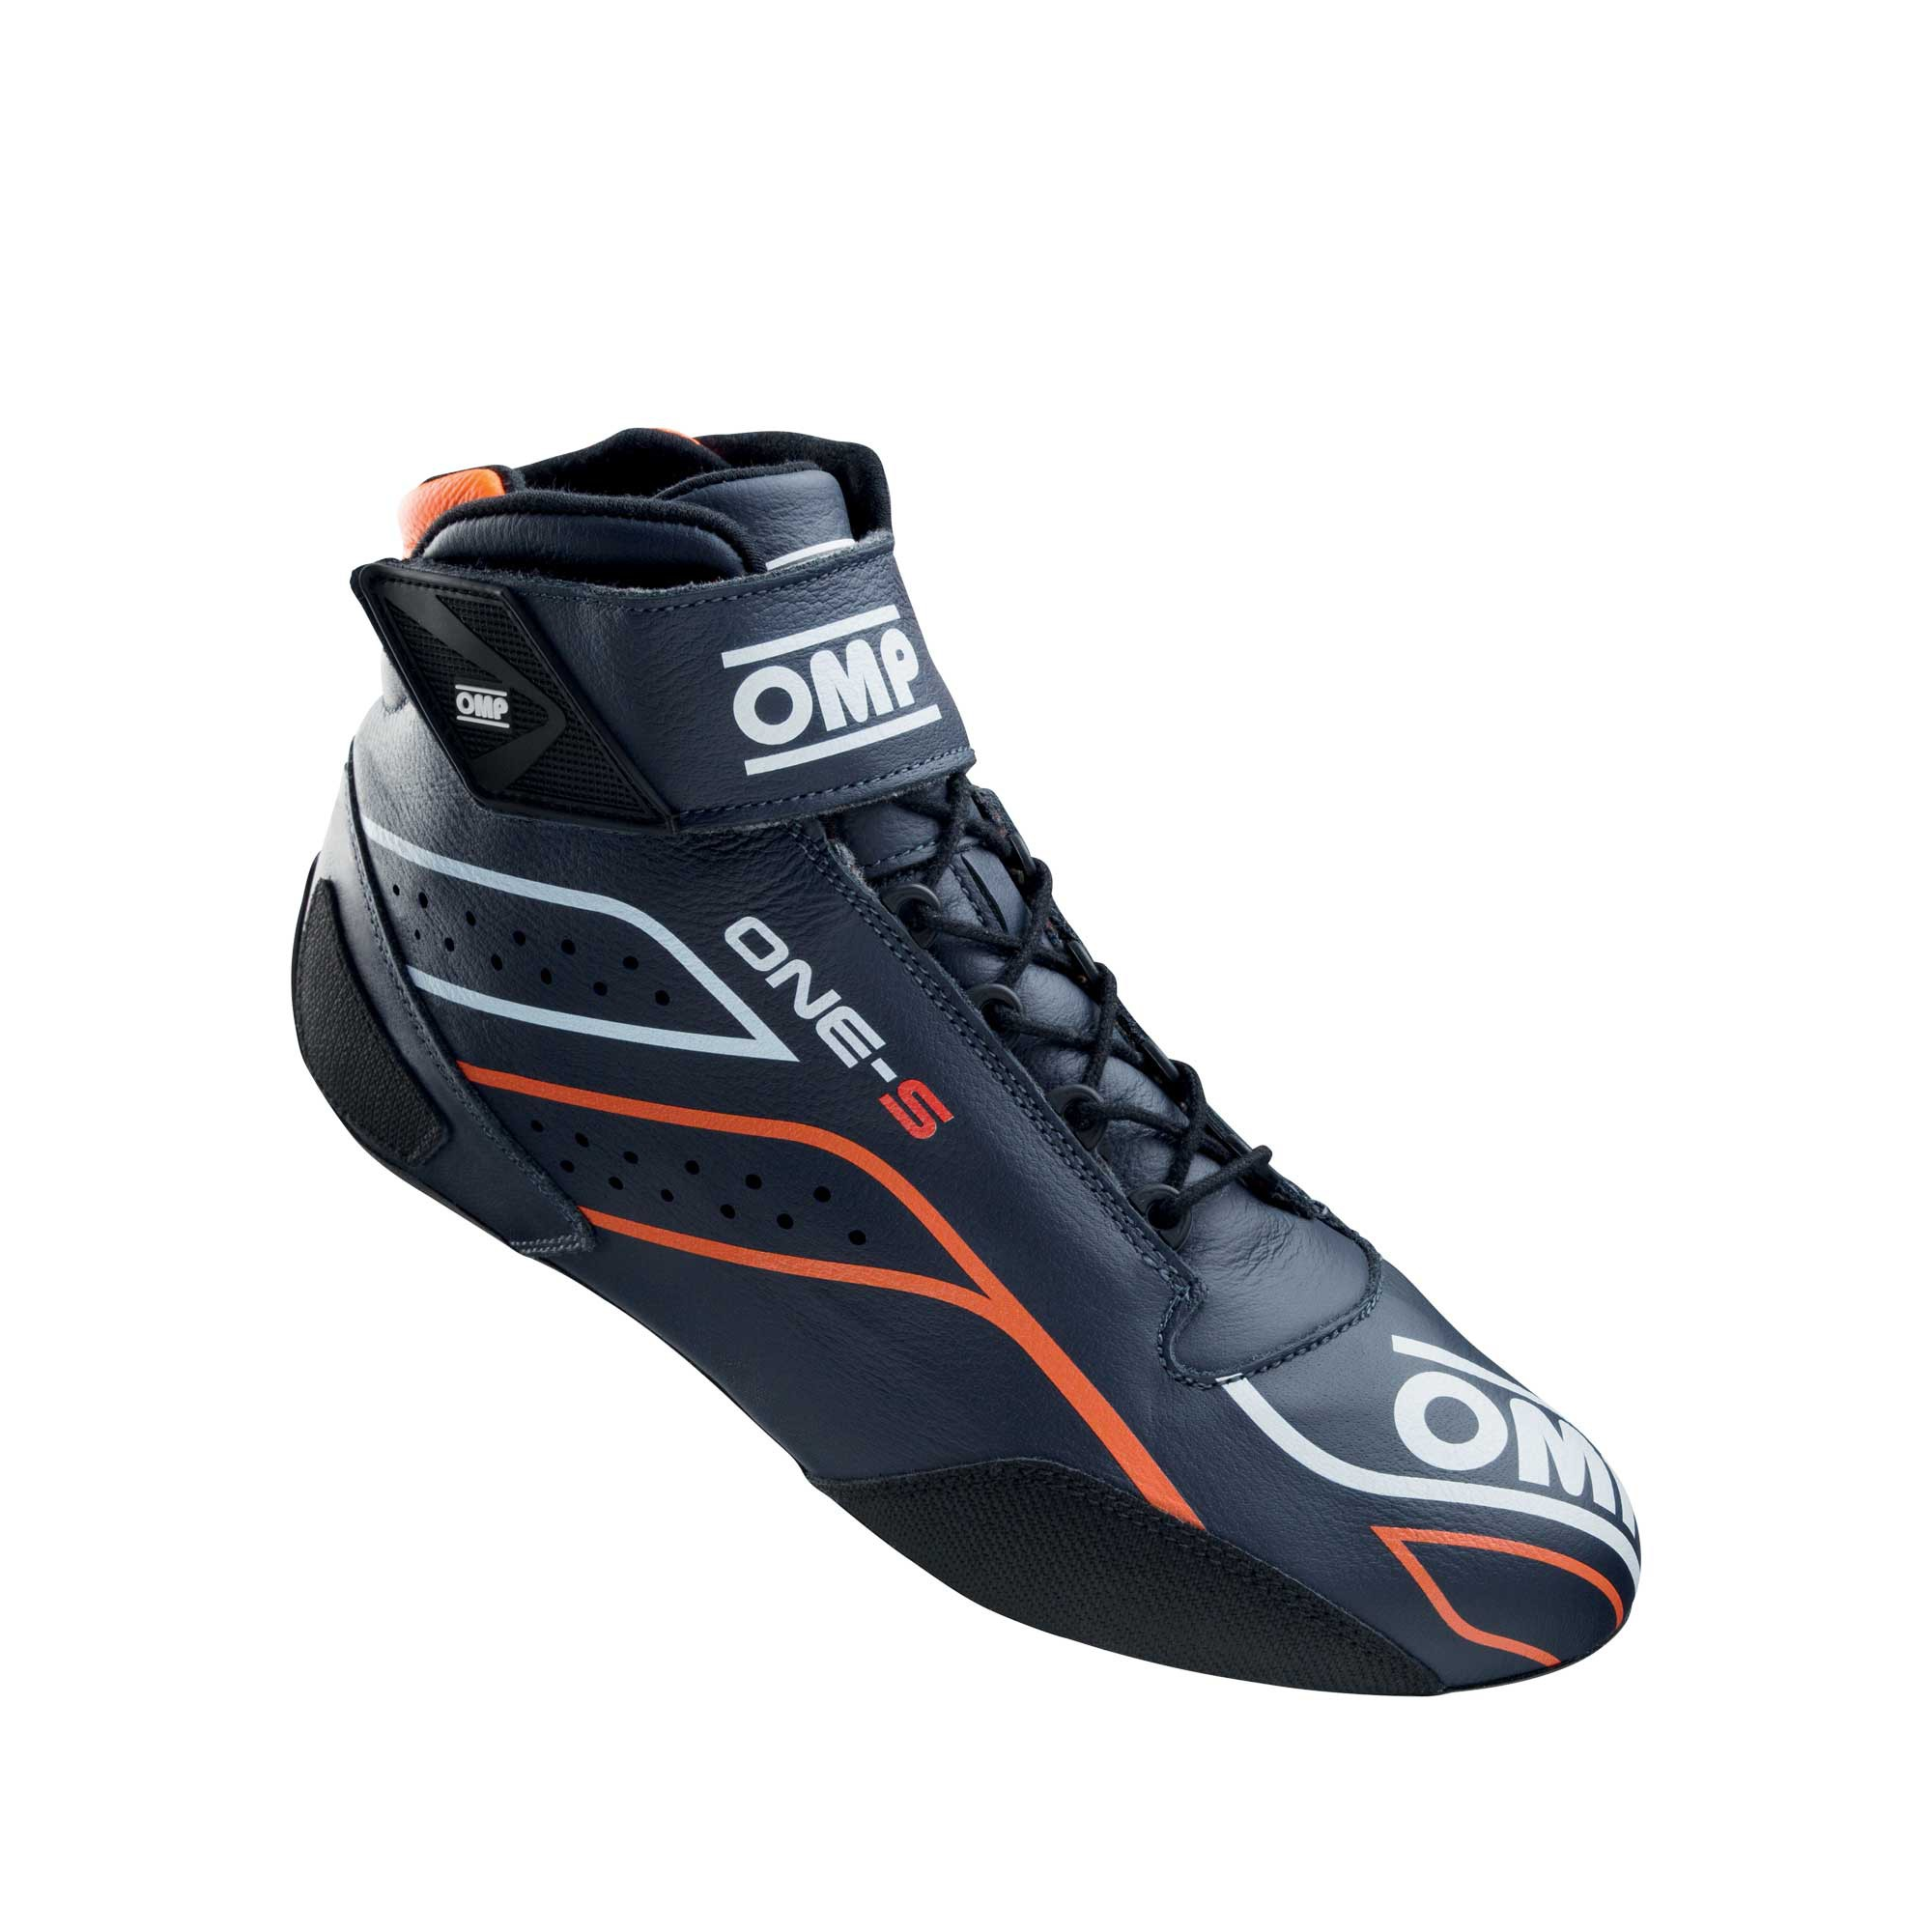 ONE-S Shoes my 2020